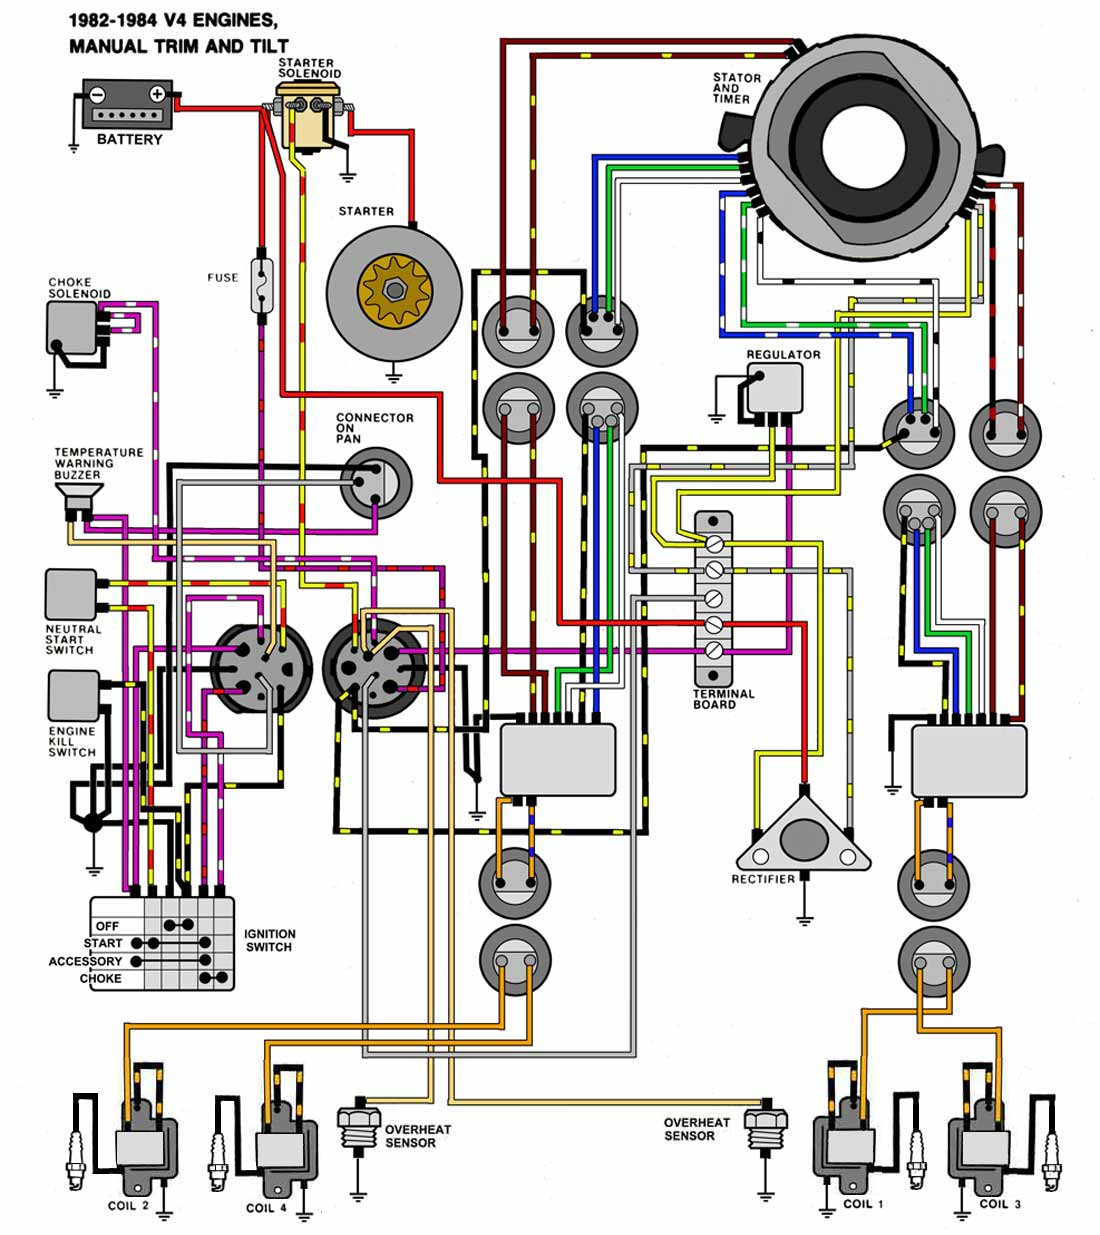 82_84_V4_NOTNT mastertech marine evinrude johnson outboard wiring diagrams  at alyssarenee.co